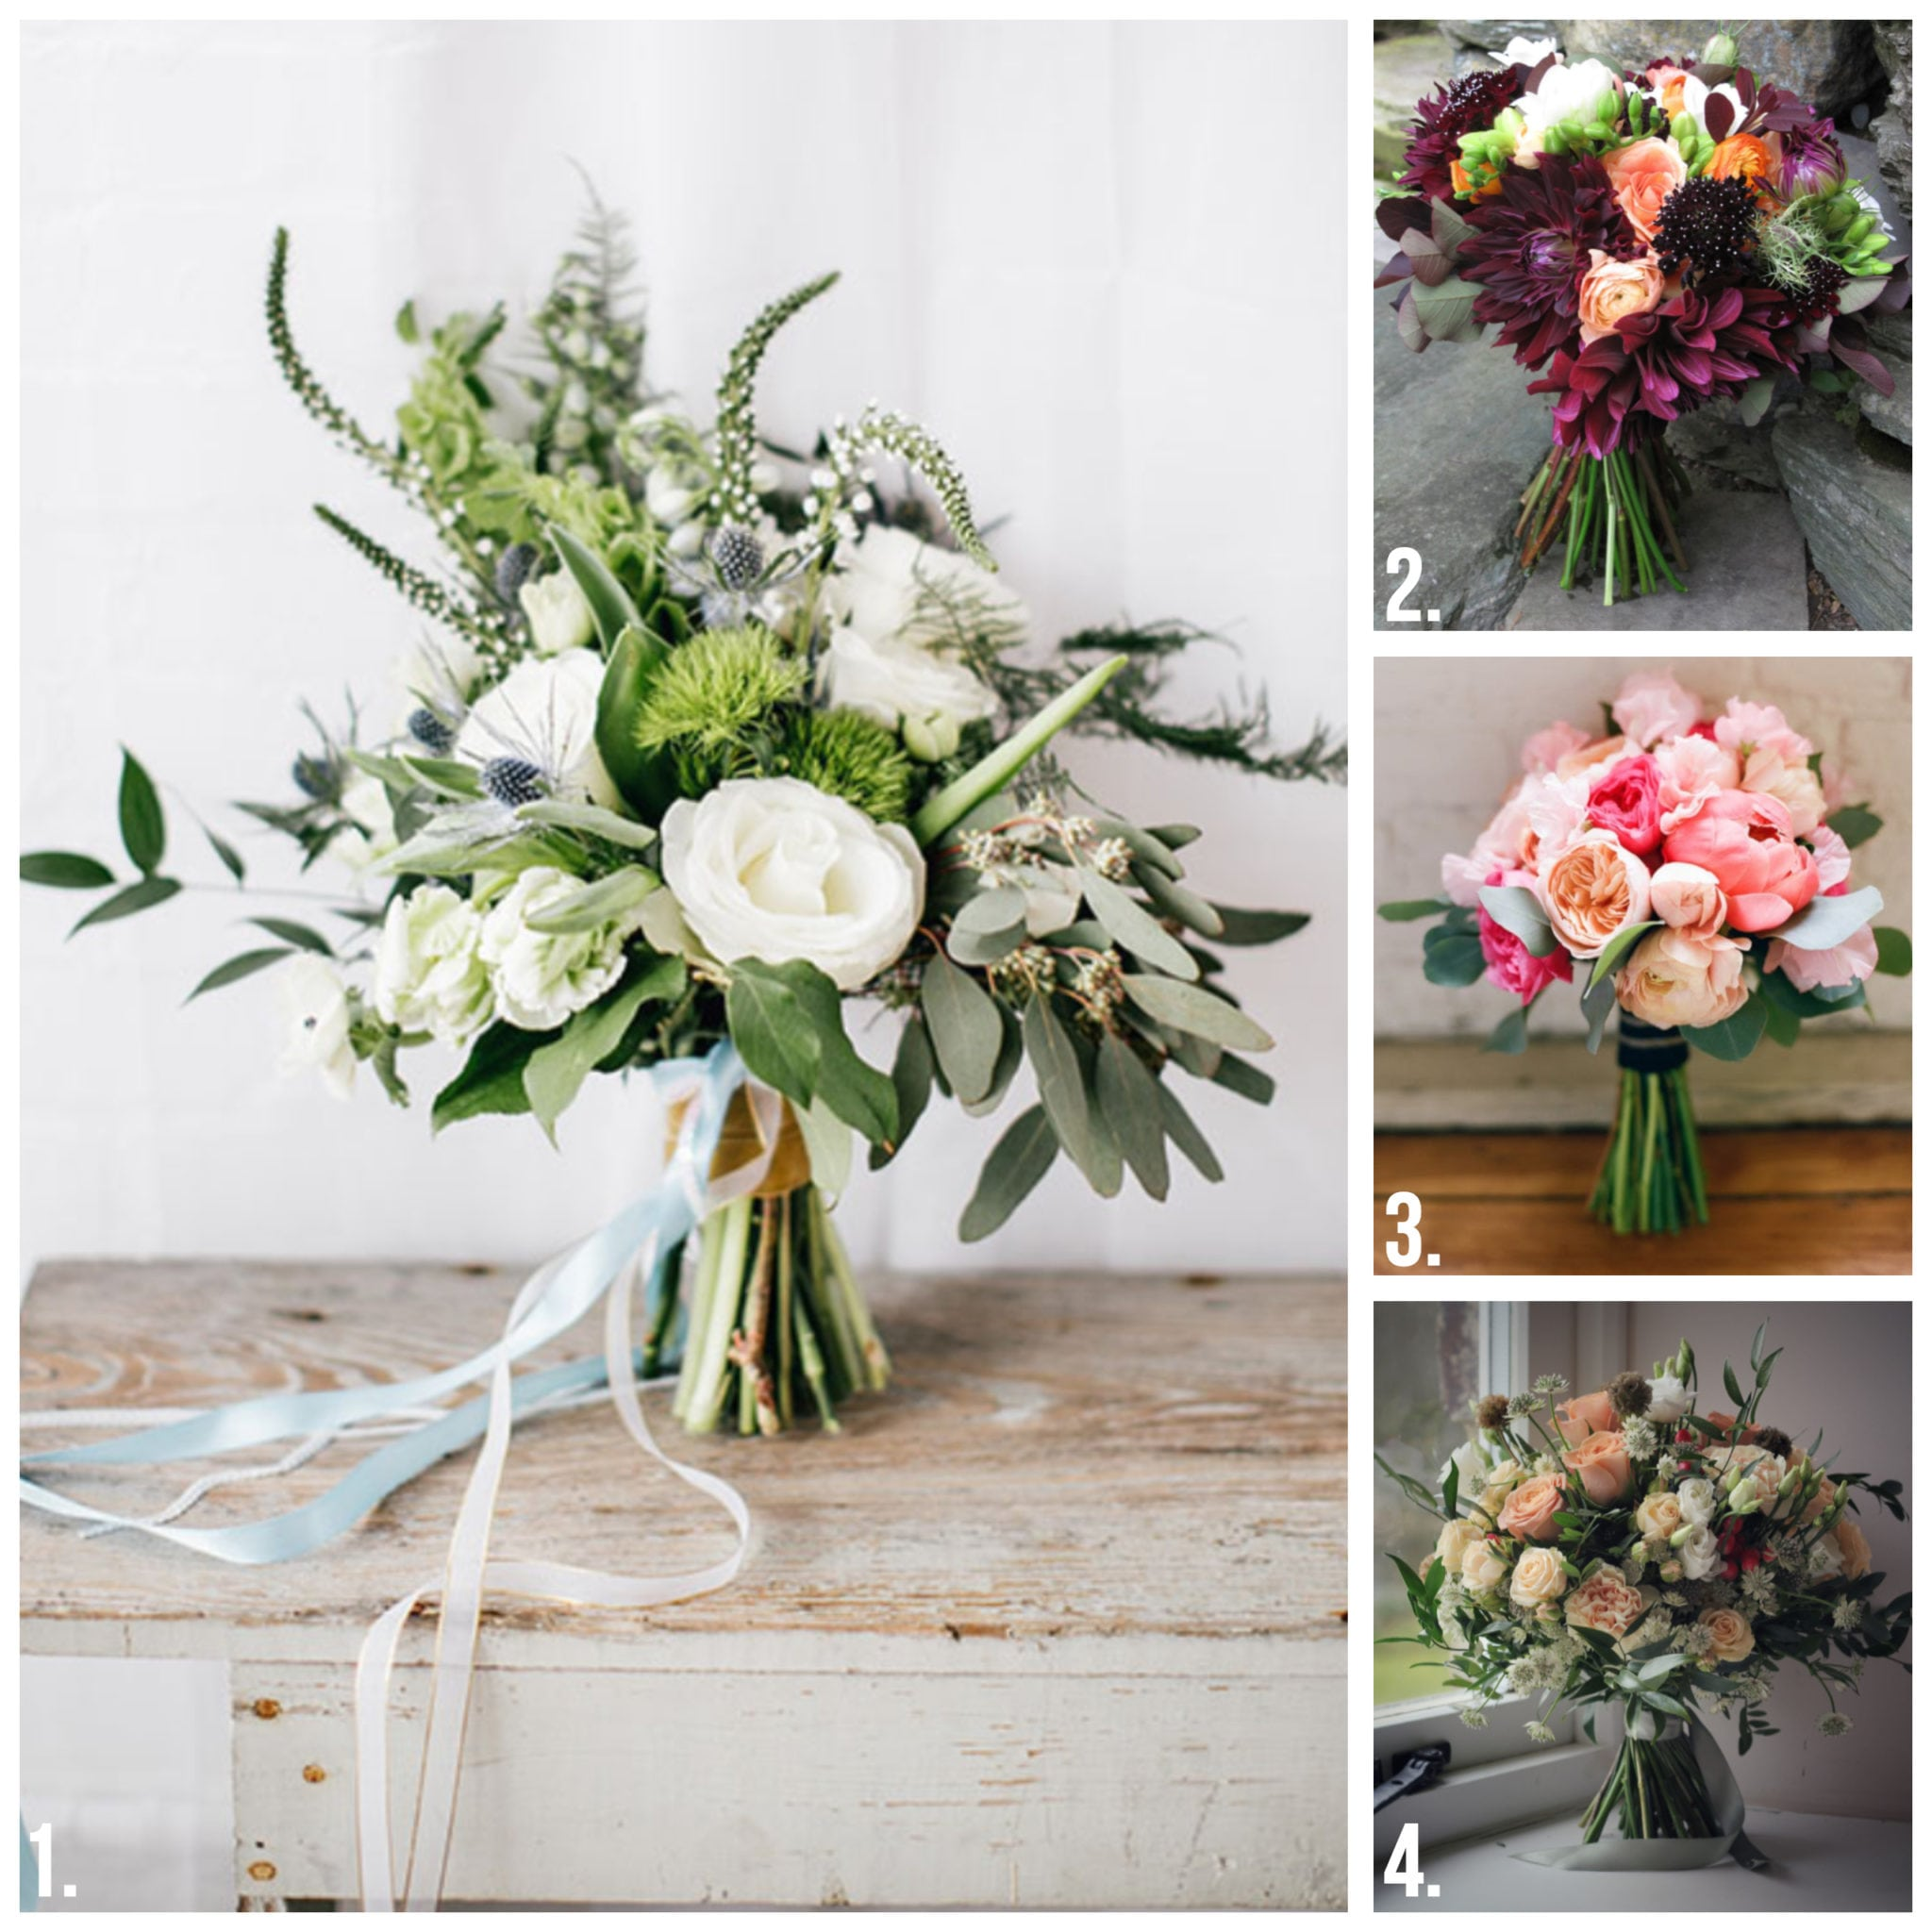 Four panel image of hand-tied bouquets